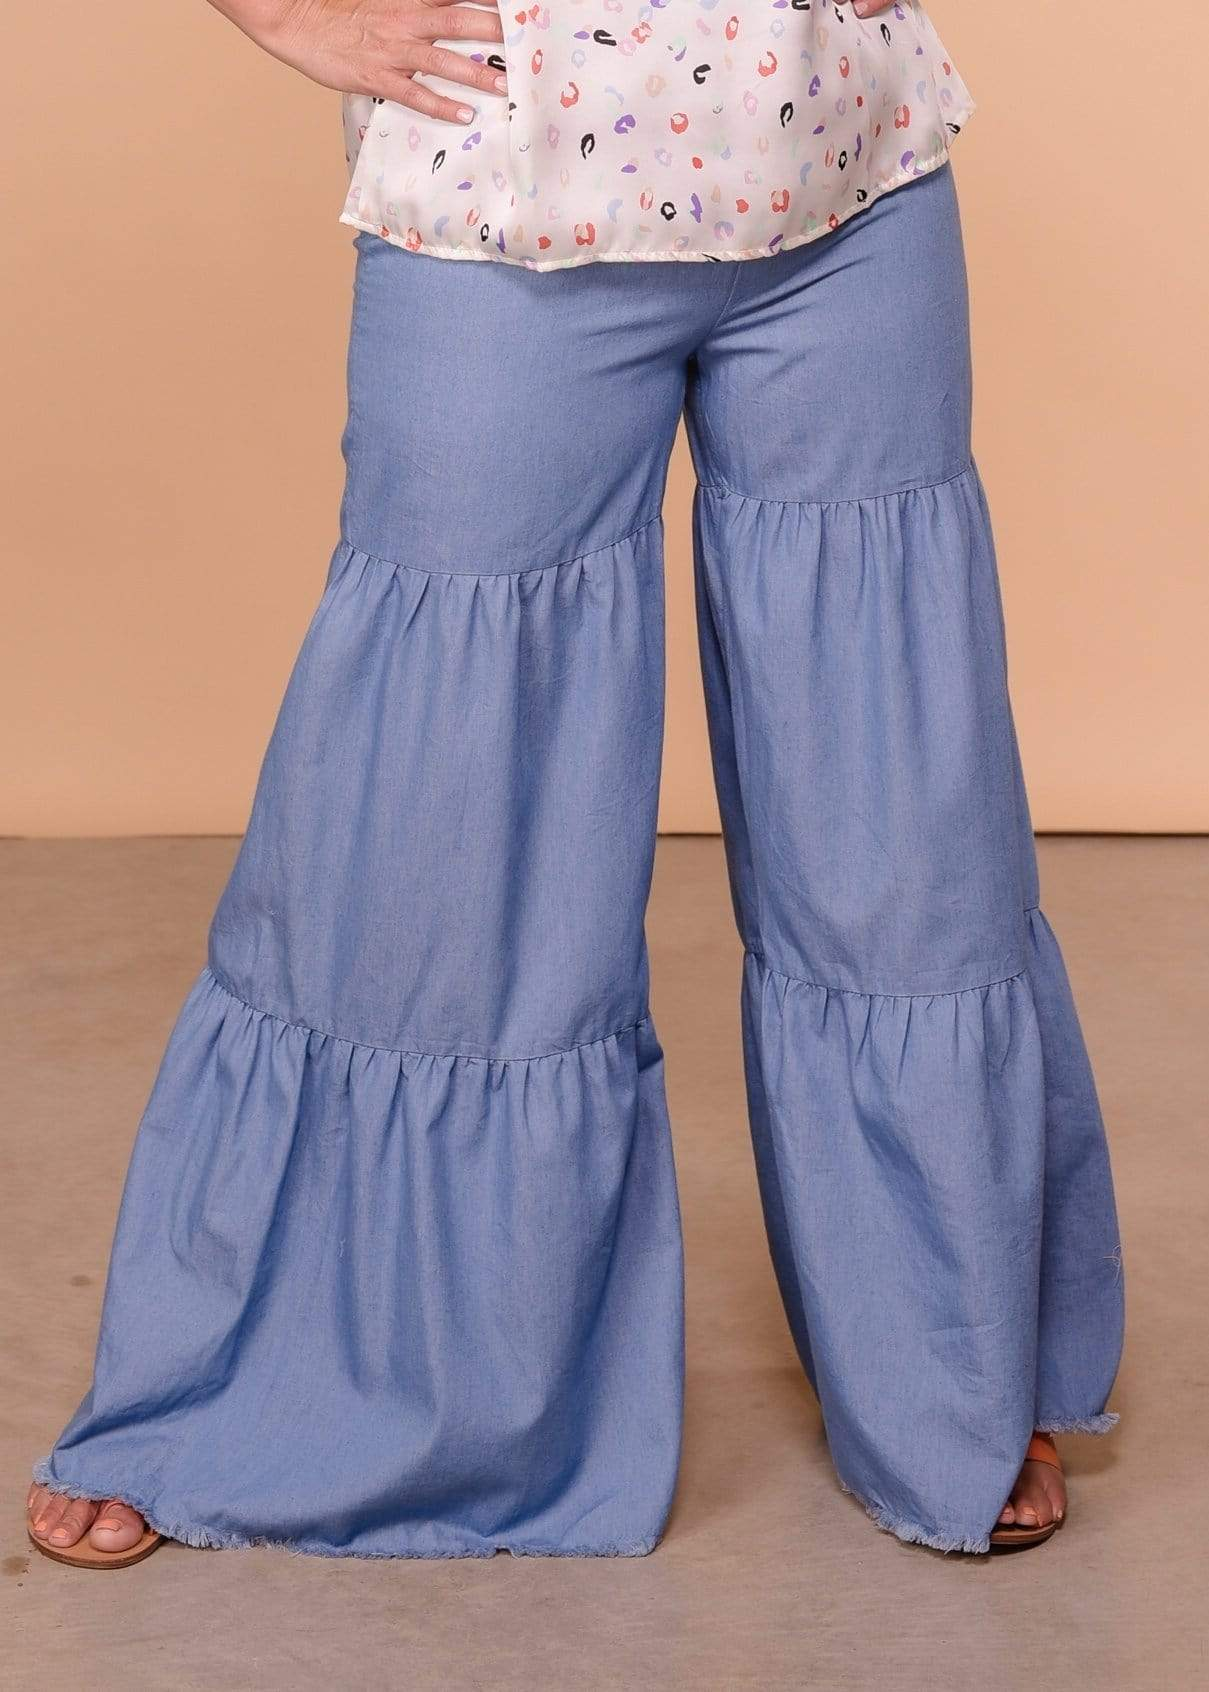 Umgee Full Length High Waist Ruffle Leg Pant